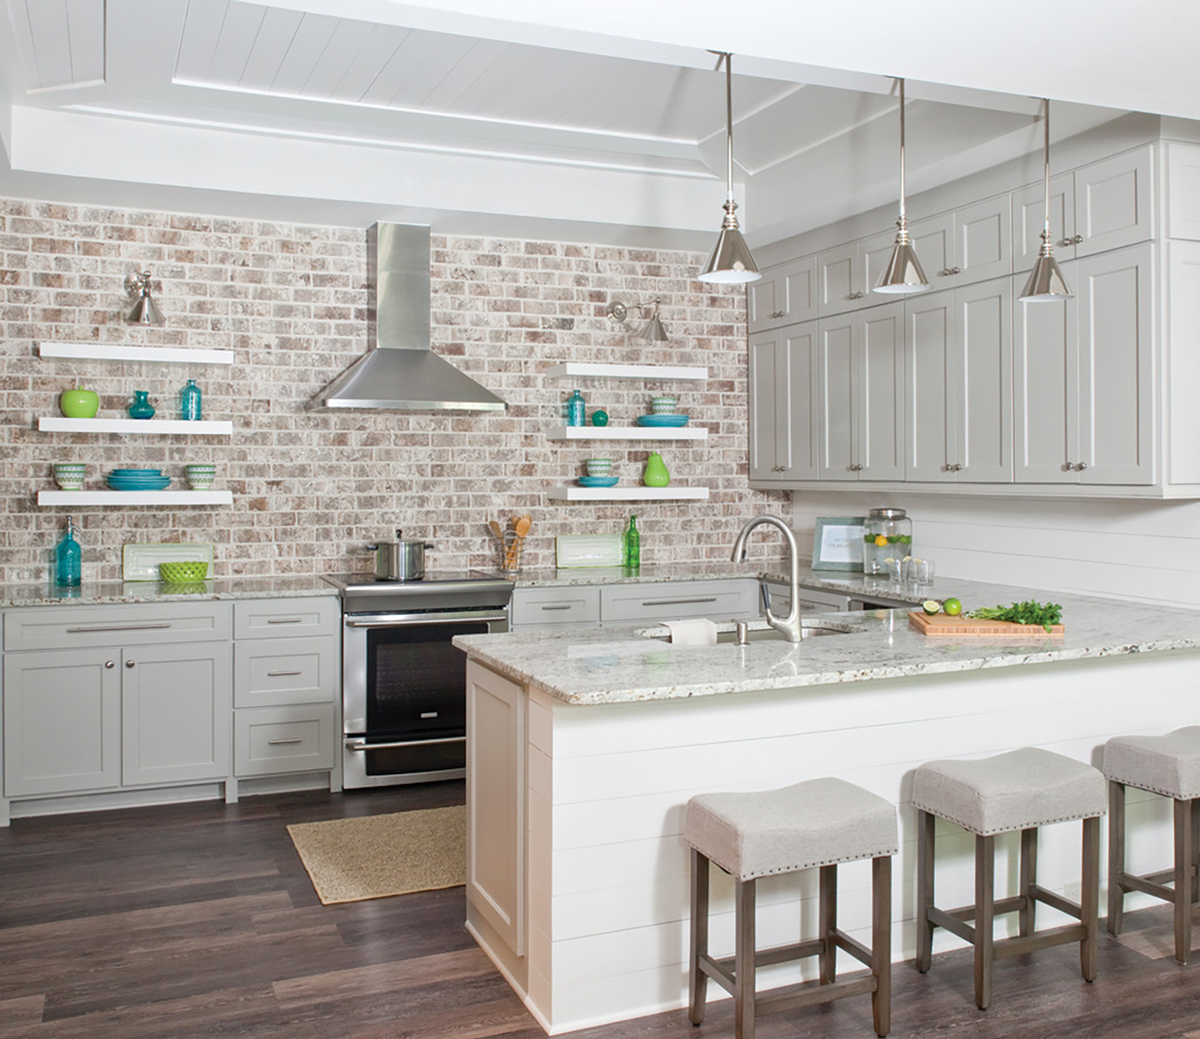 kitchen shelves and cabinets kitchen cabinets or open shelving we asked an expert for the pros and cons atlanta magazine 8638